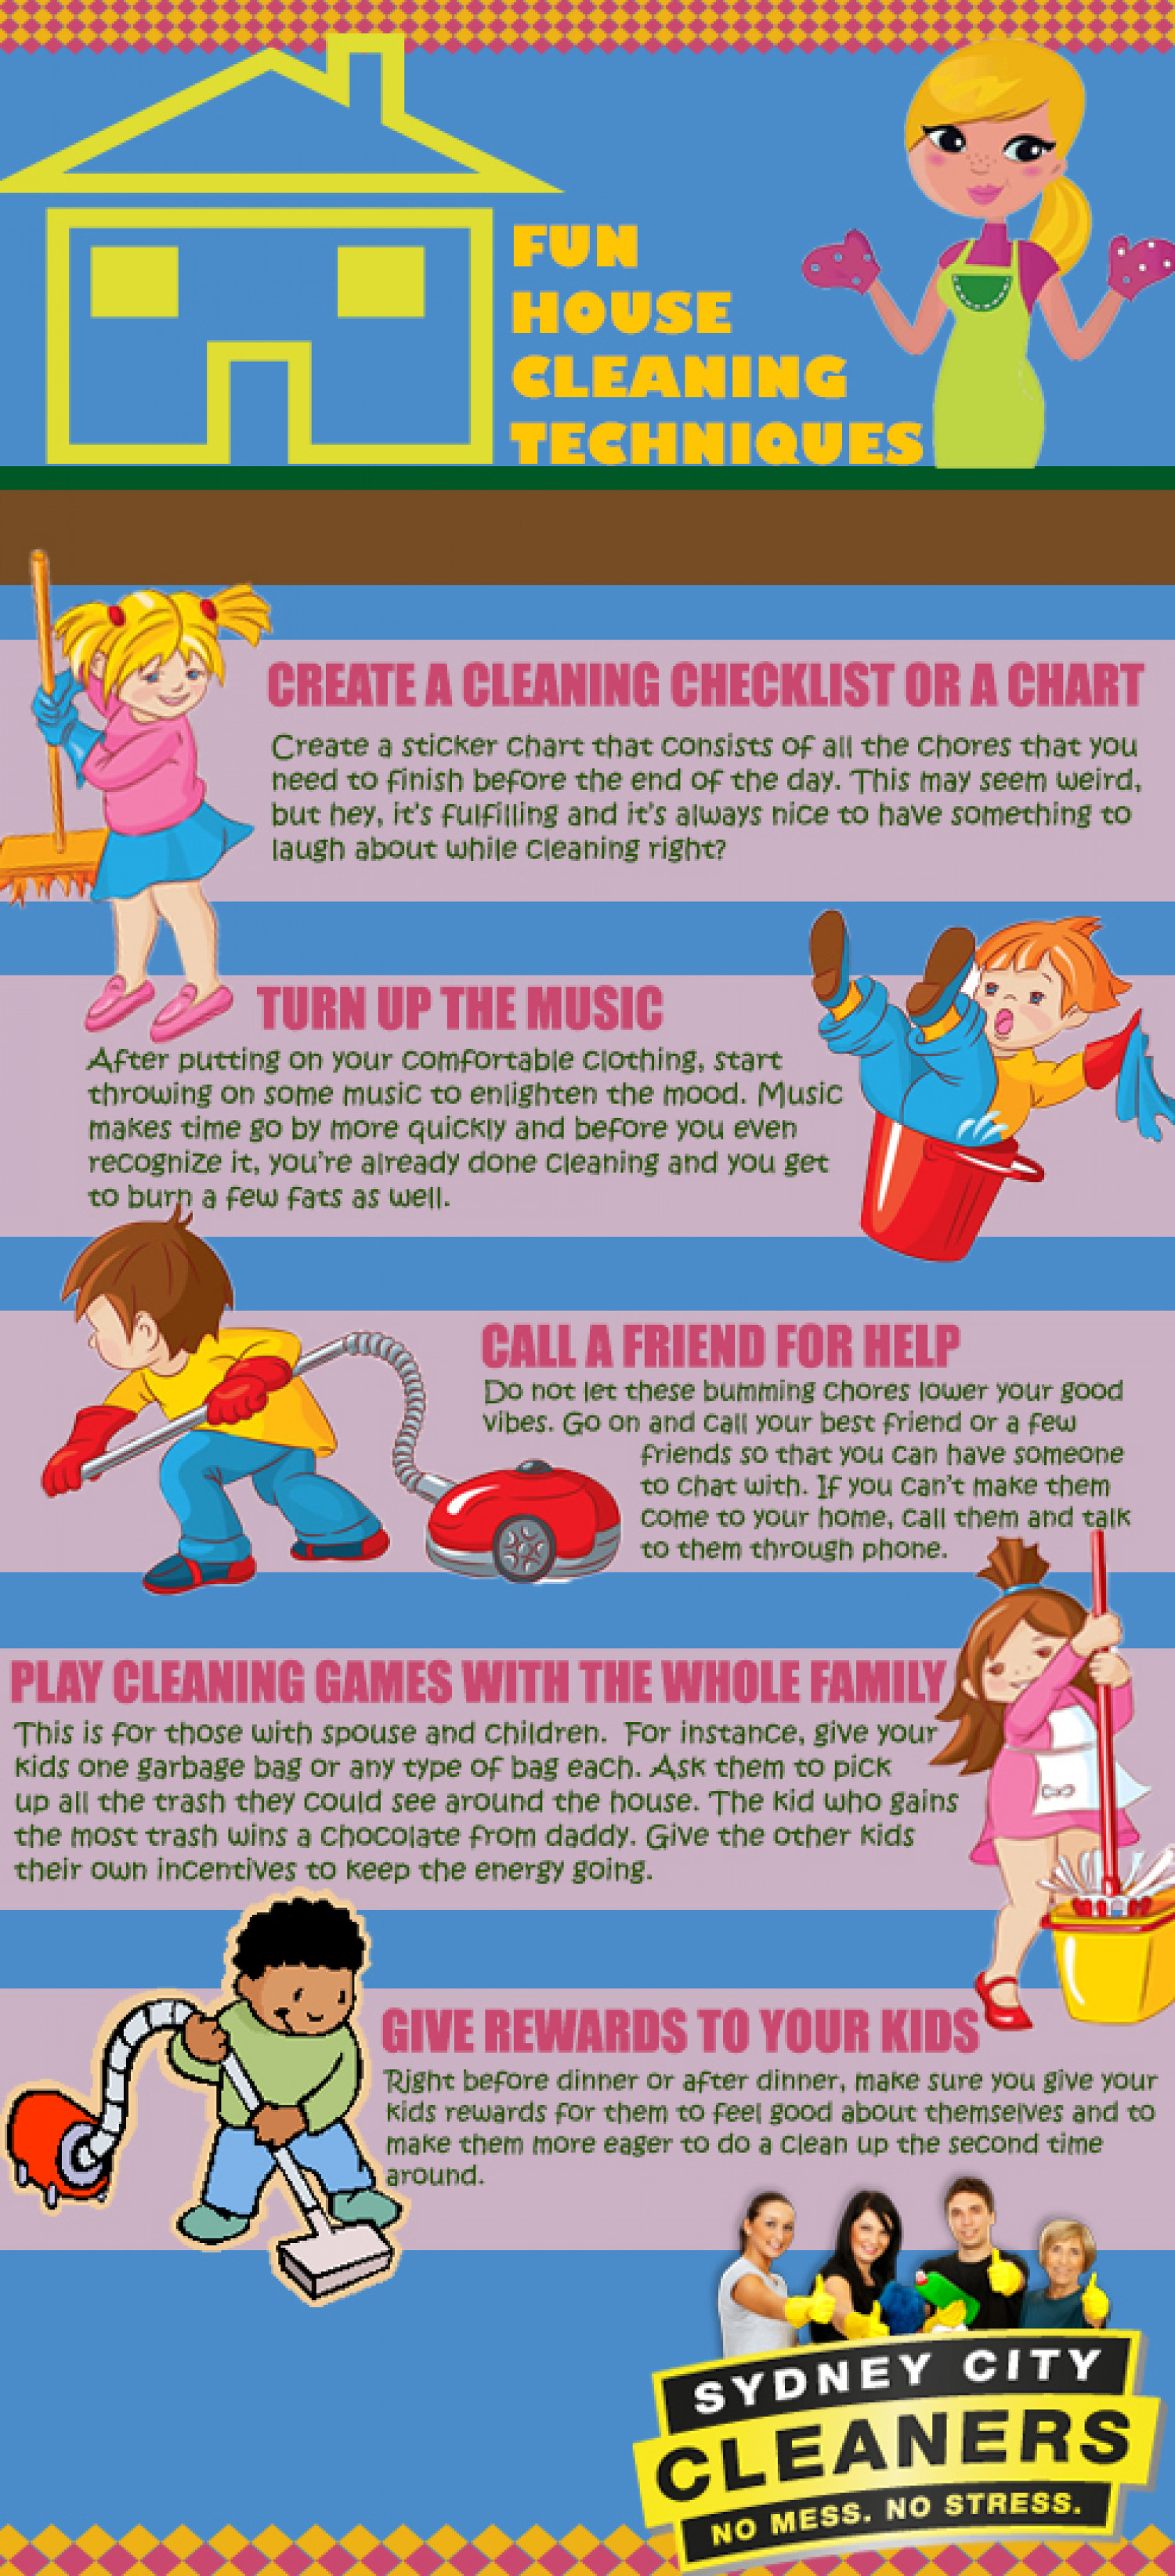 Fun House Cleaning Techniques Infographic